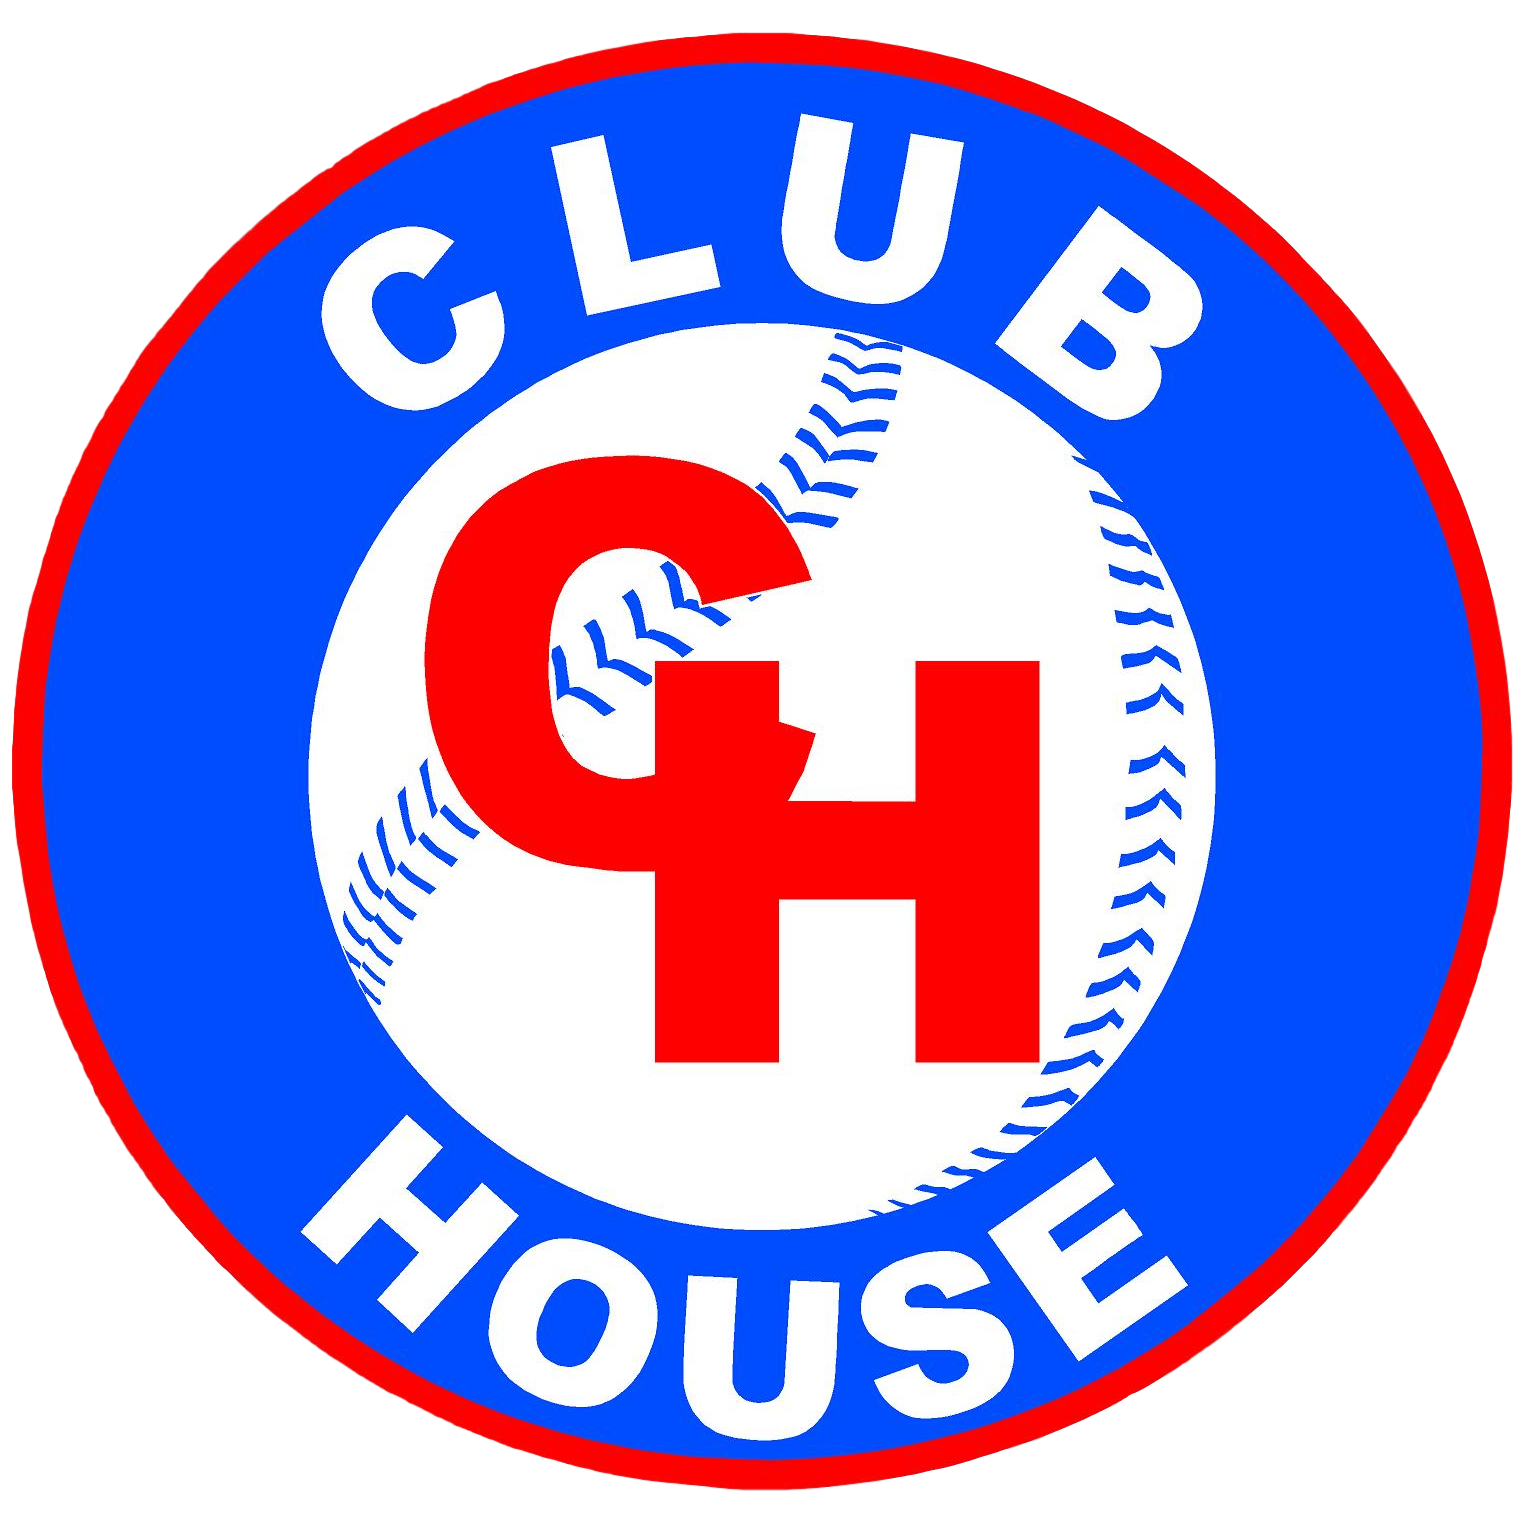 West Michigan Club House Coupons near me in Jenison | 8coupons